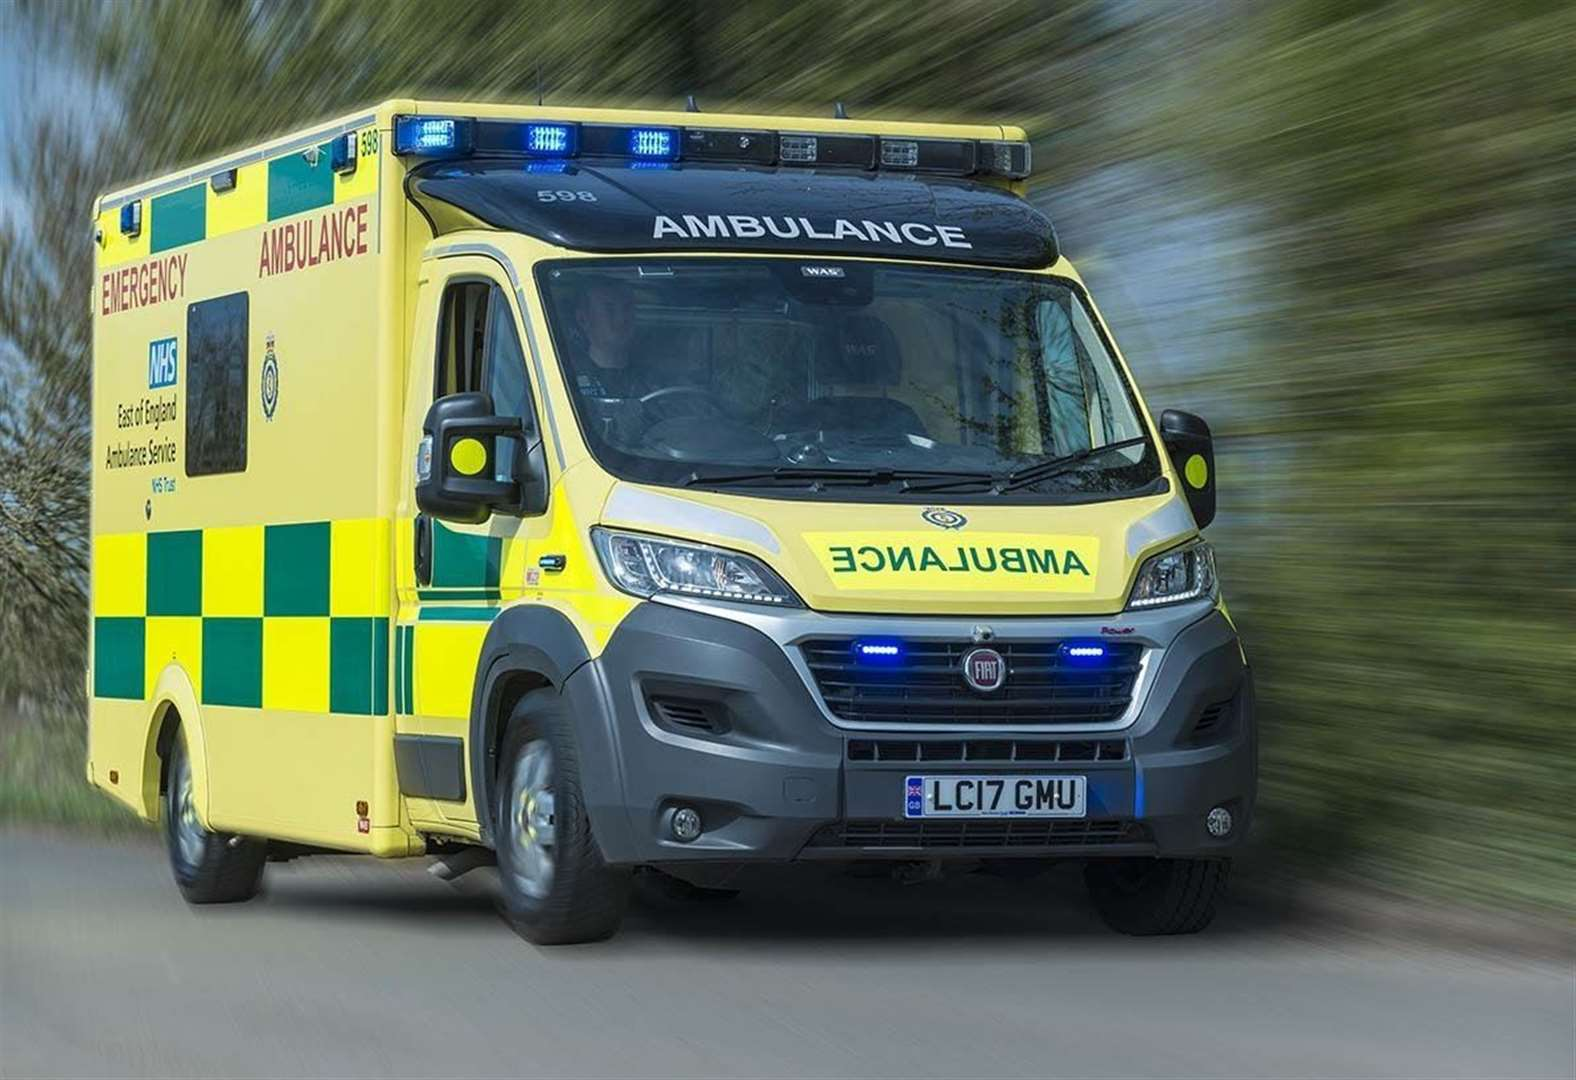 Port Jackson pub backs campaign to stop abuse of ambulance staff